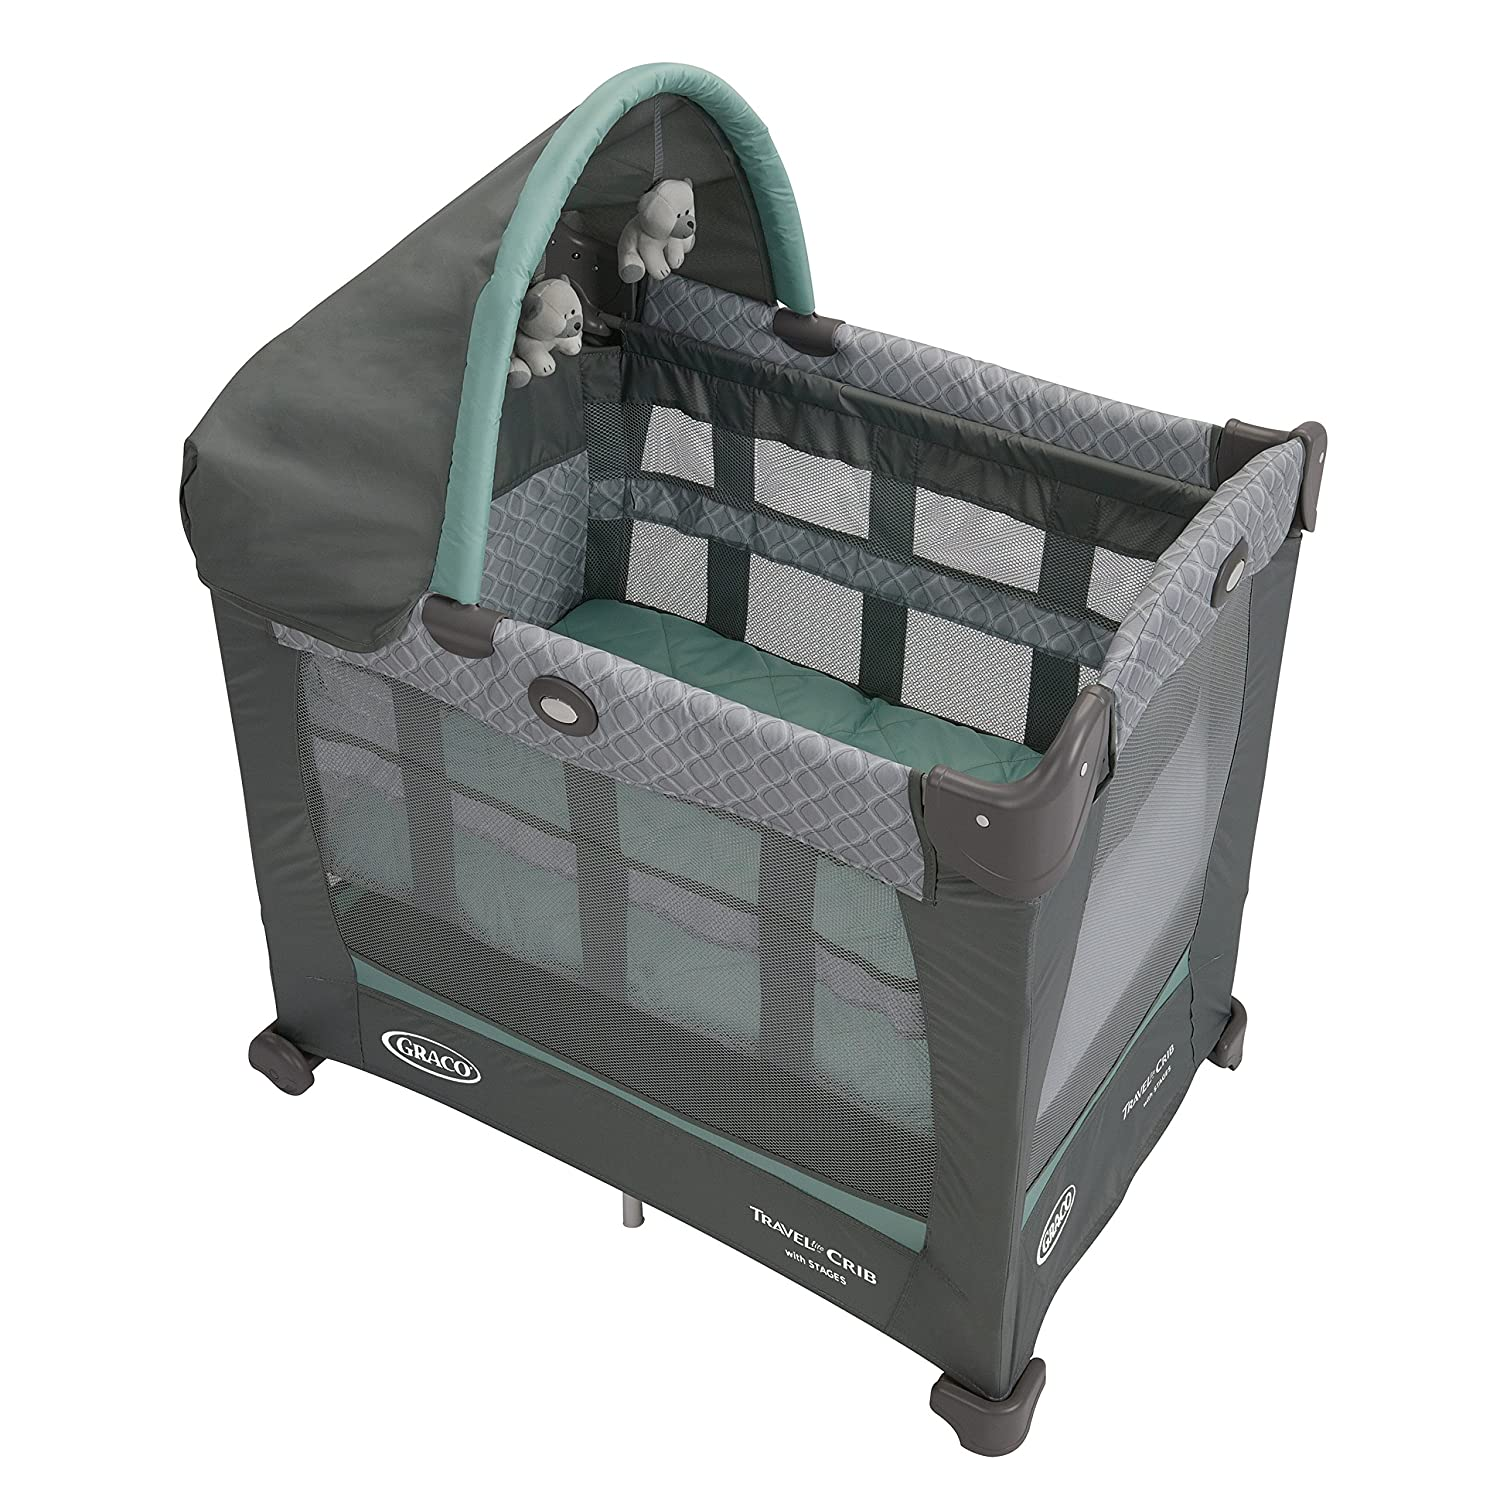 Graco Travel Lite Crib With Stages, Manor, One Size by Graco